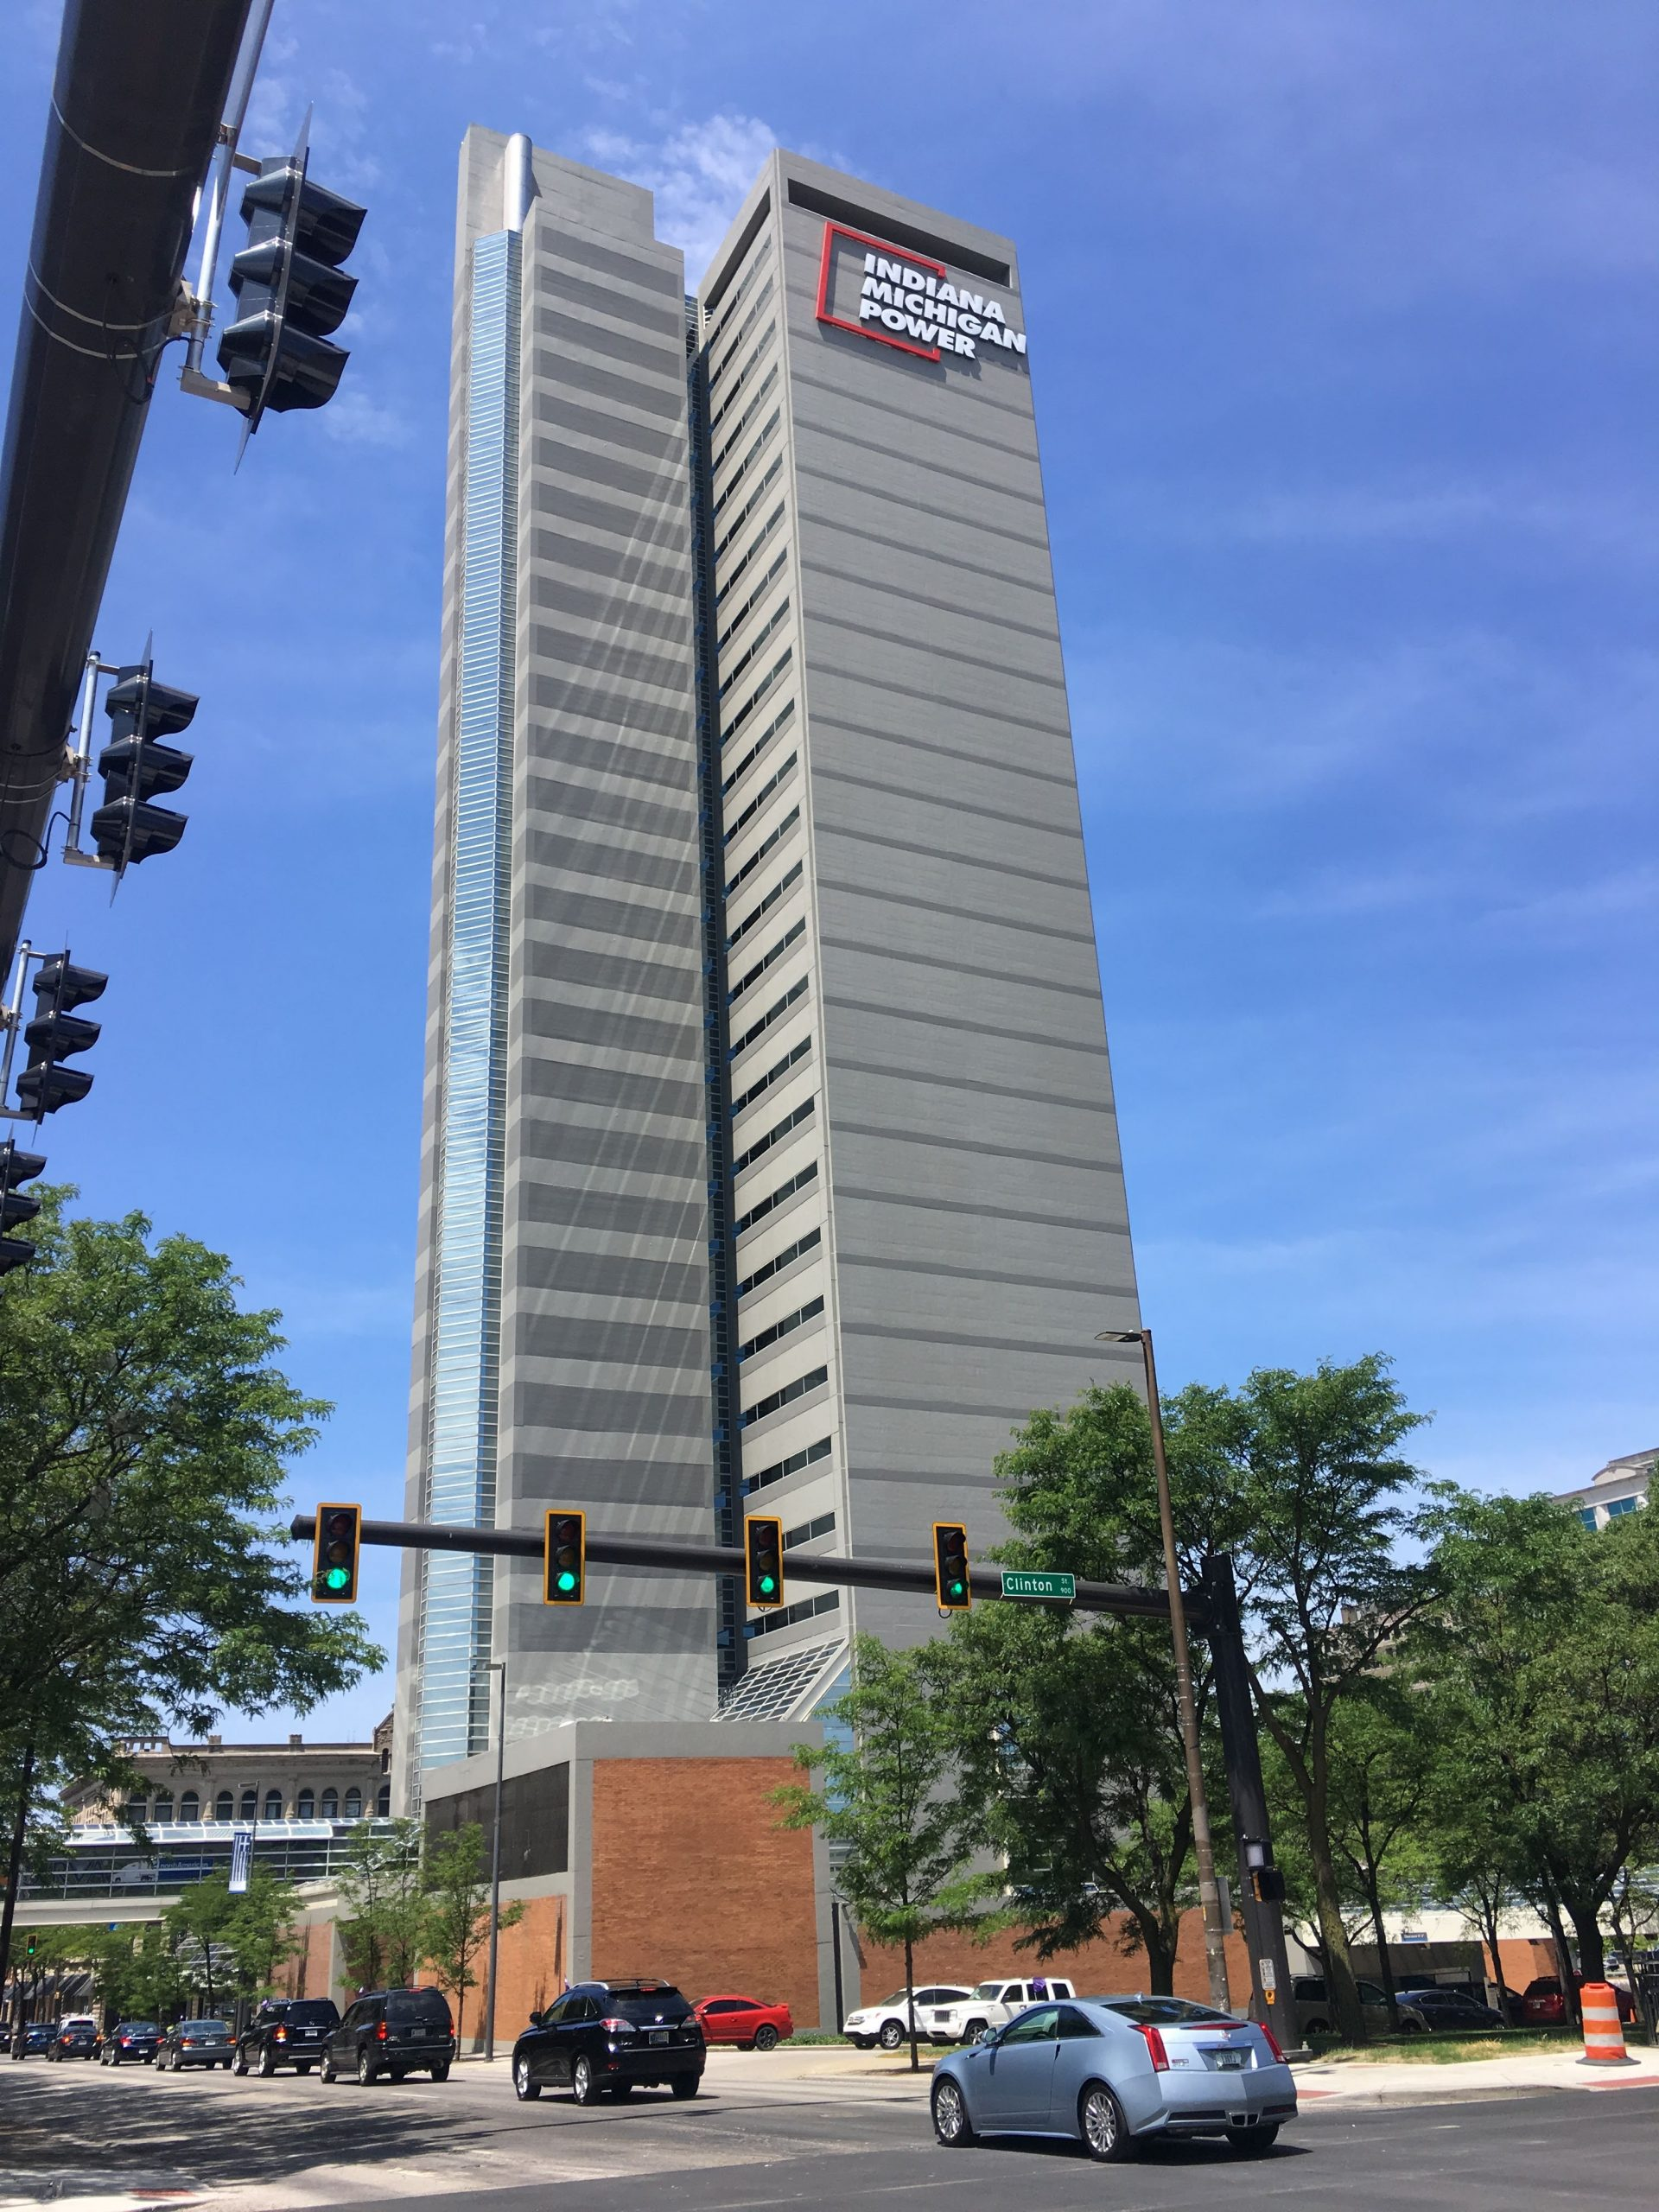 Commercial waterproofing performed on Indiana Michigan Power Center high rise office building in Fort Wayne, IN